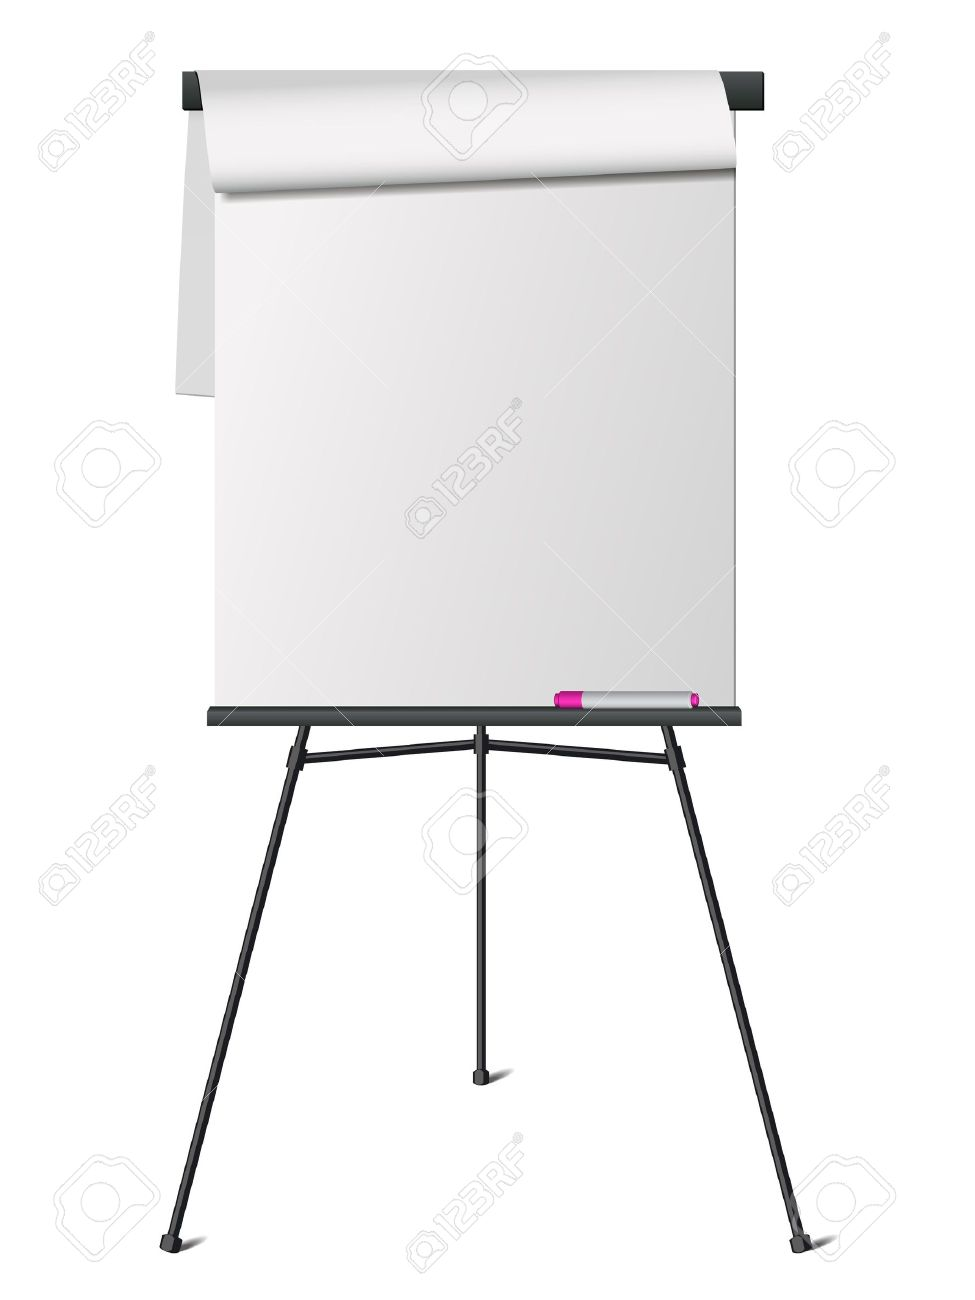 flip chart royalty free cliparts vectors and stock illustration